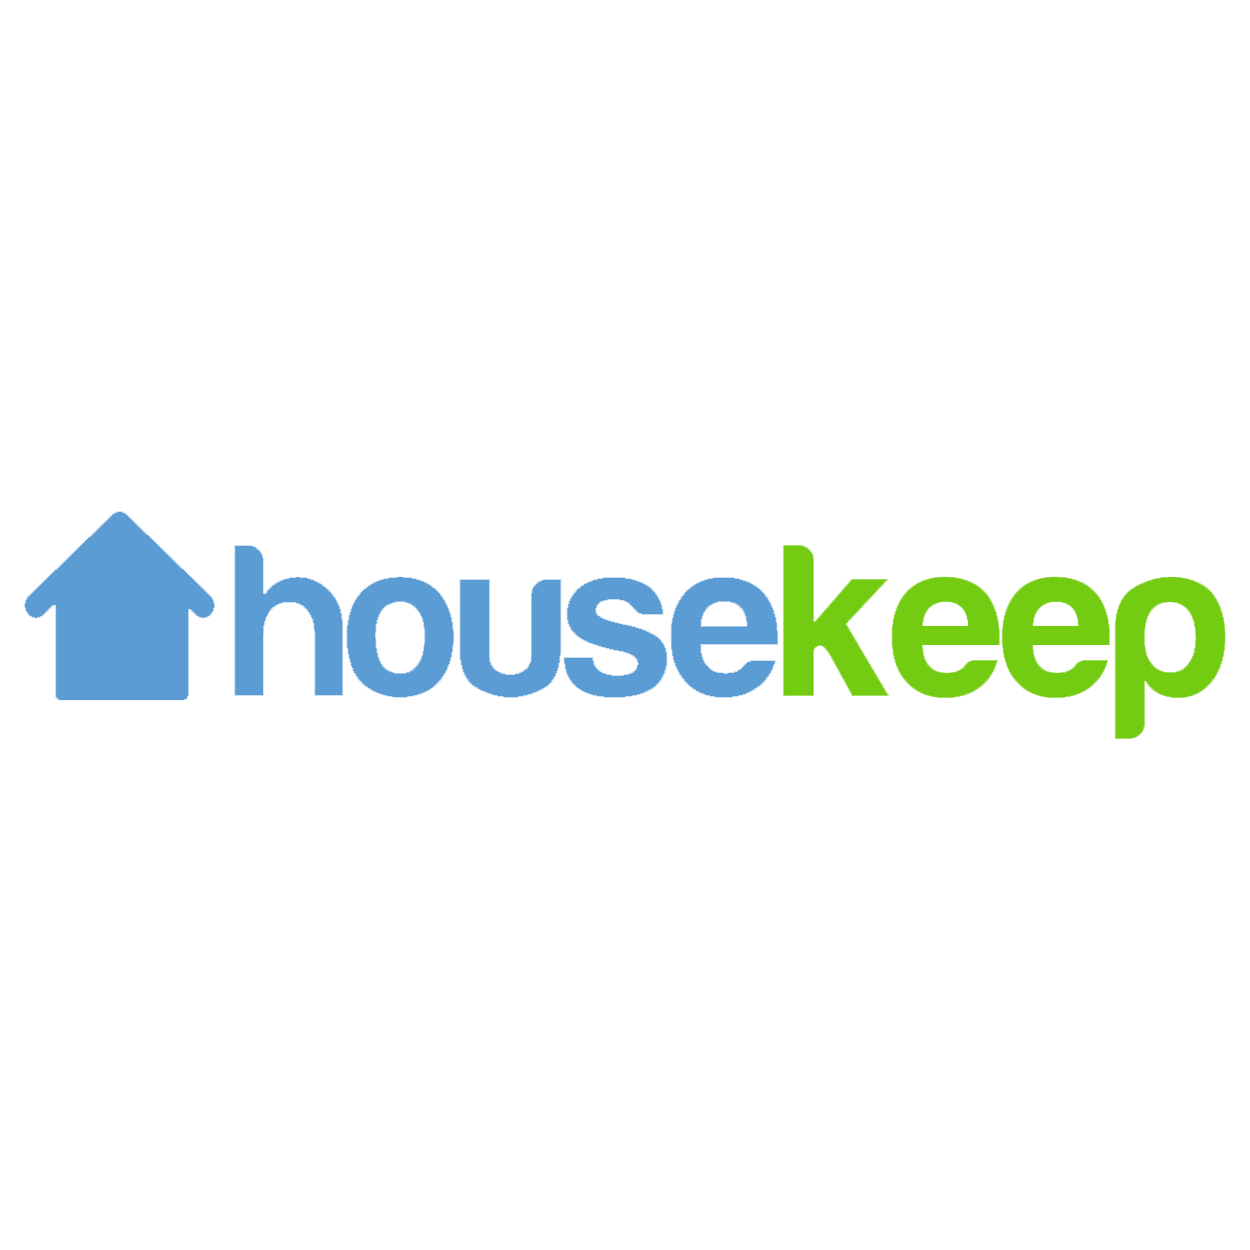 Housekeep: The firm sweeping the floor with rivals in a £4bn industry